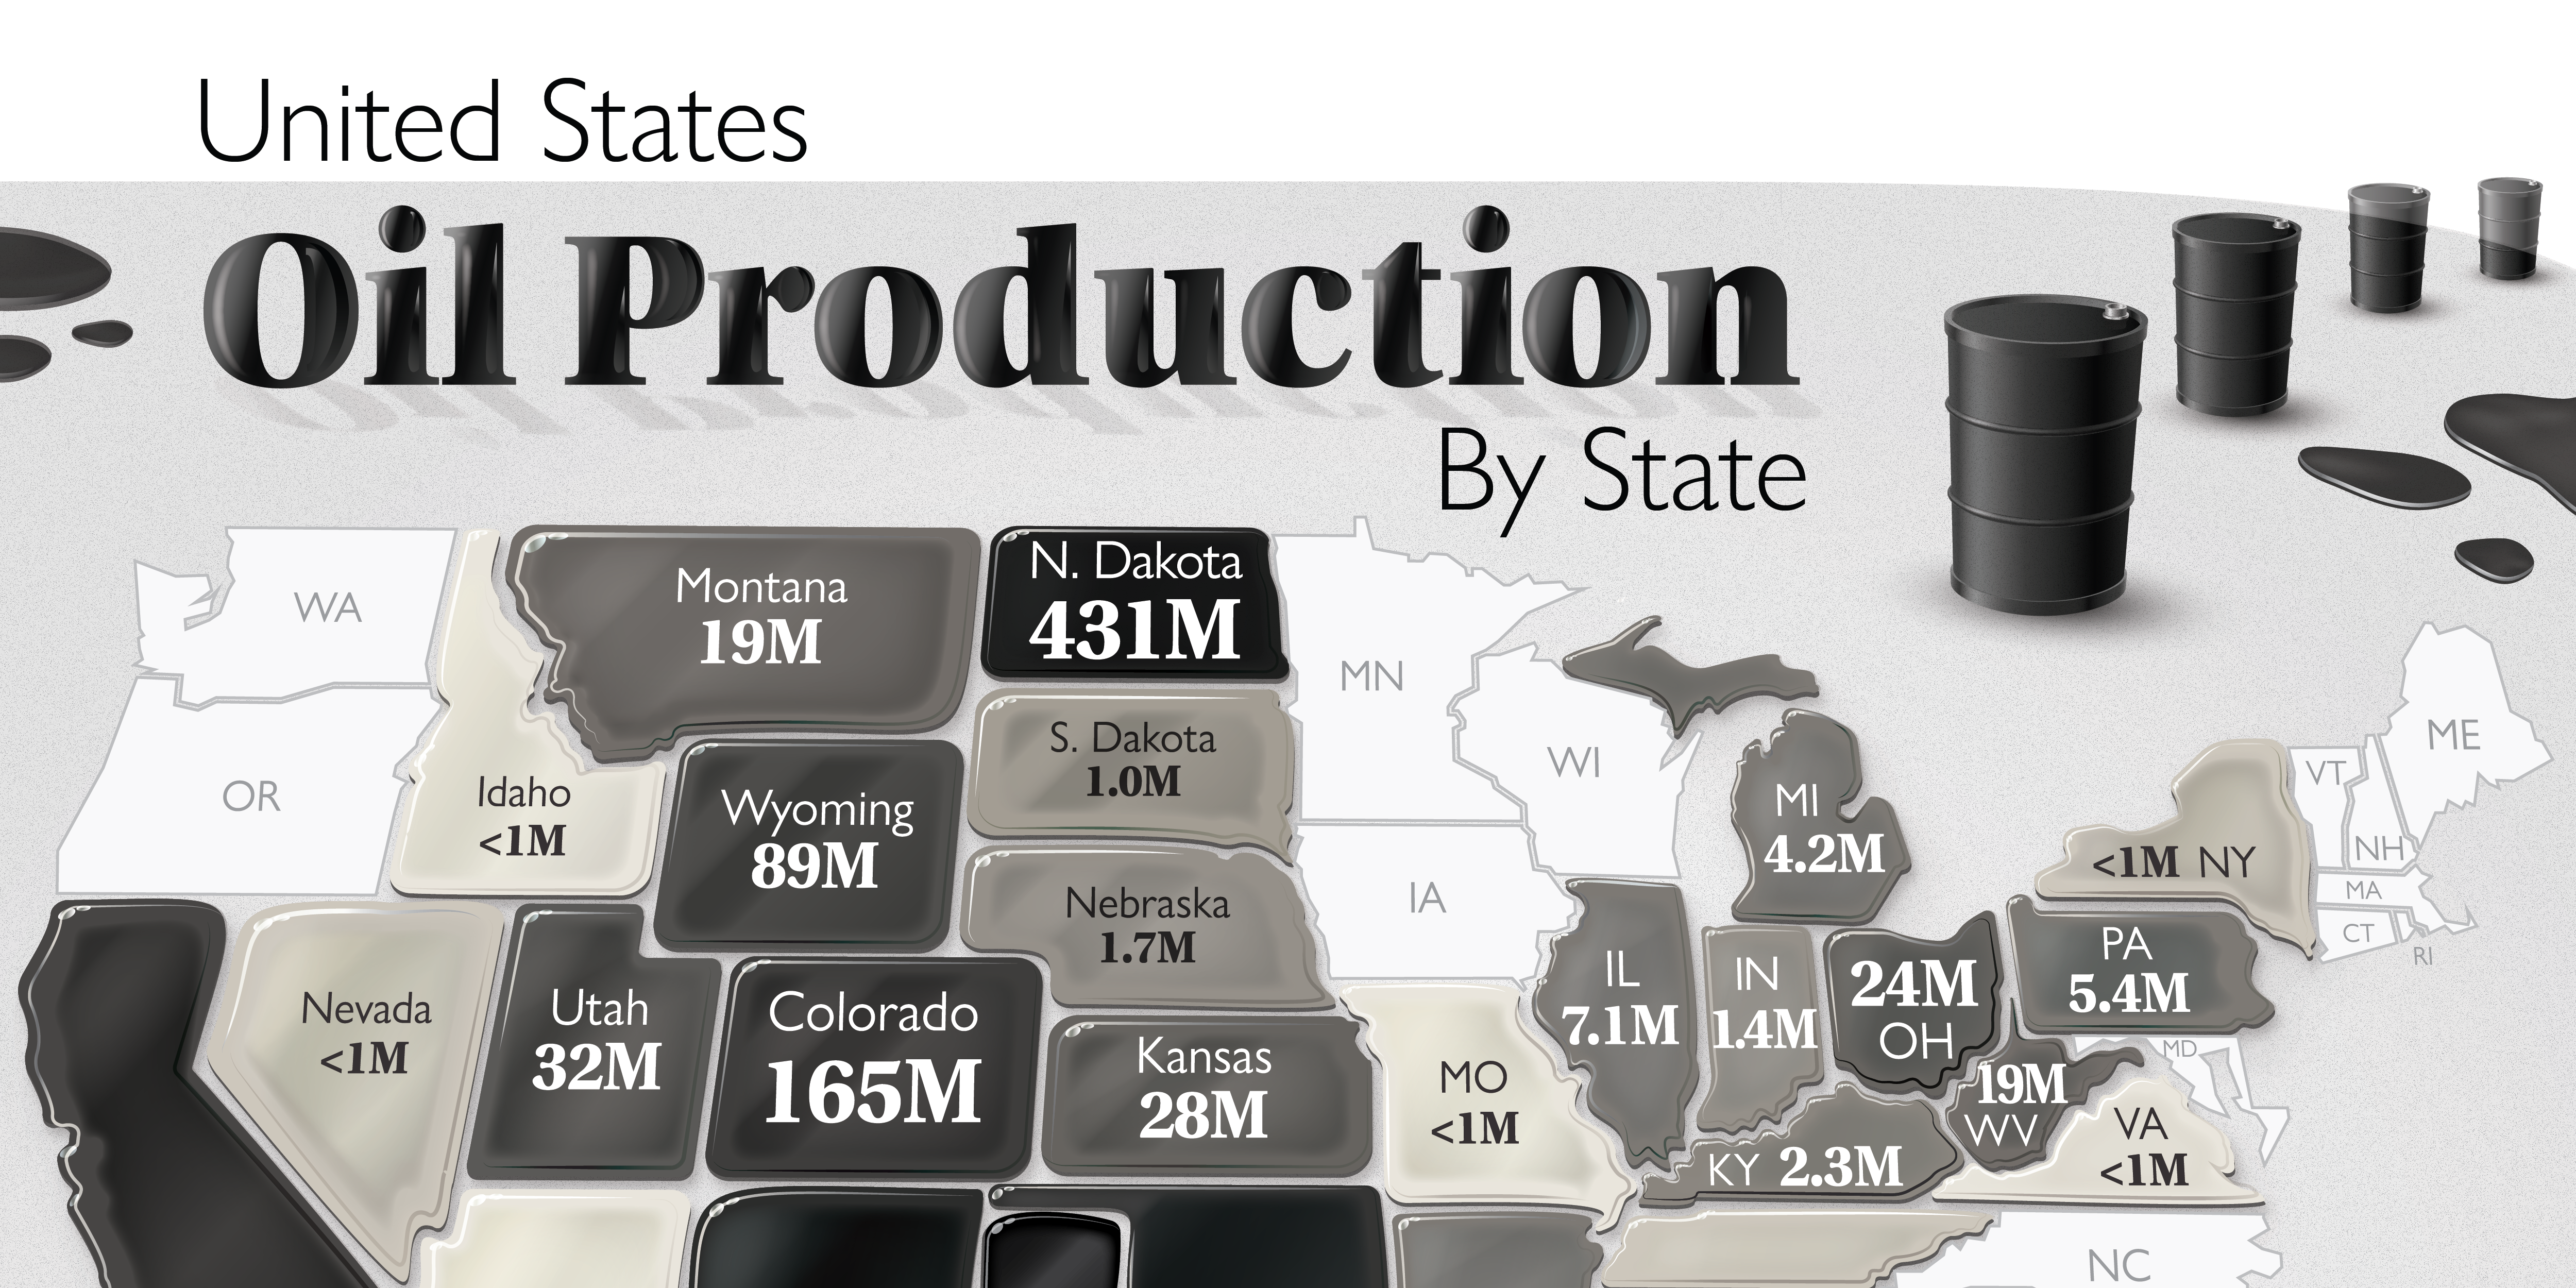 Map of U.S. Oil Production by State